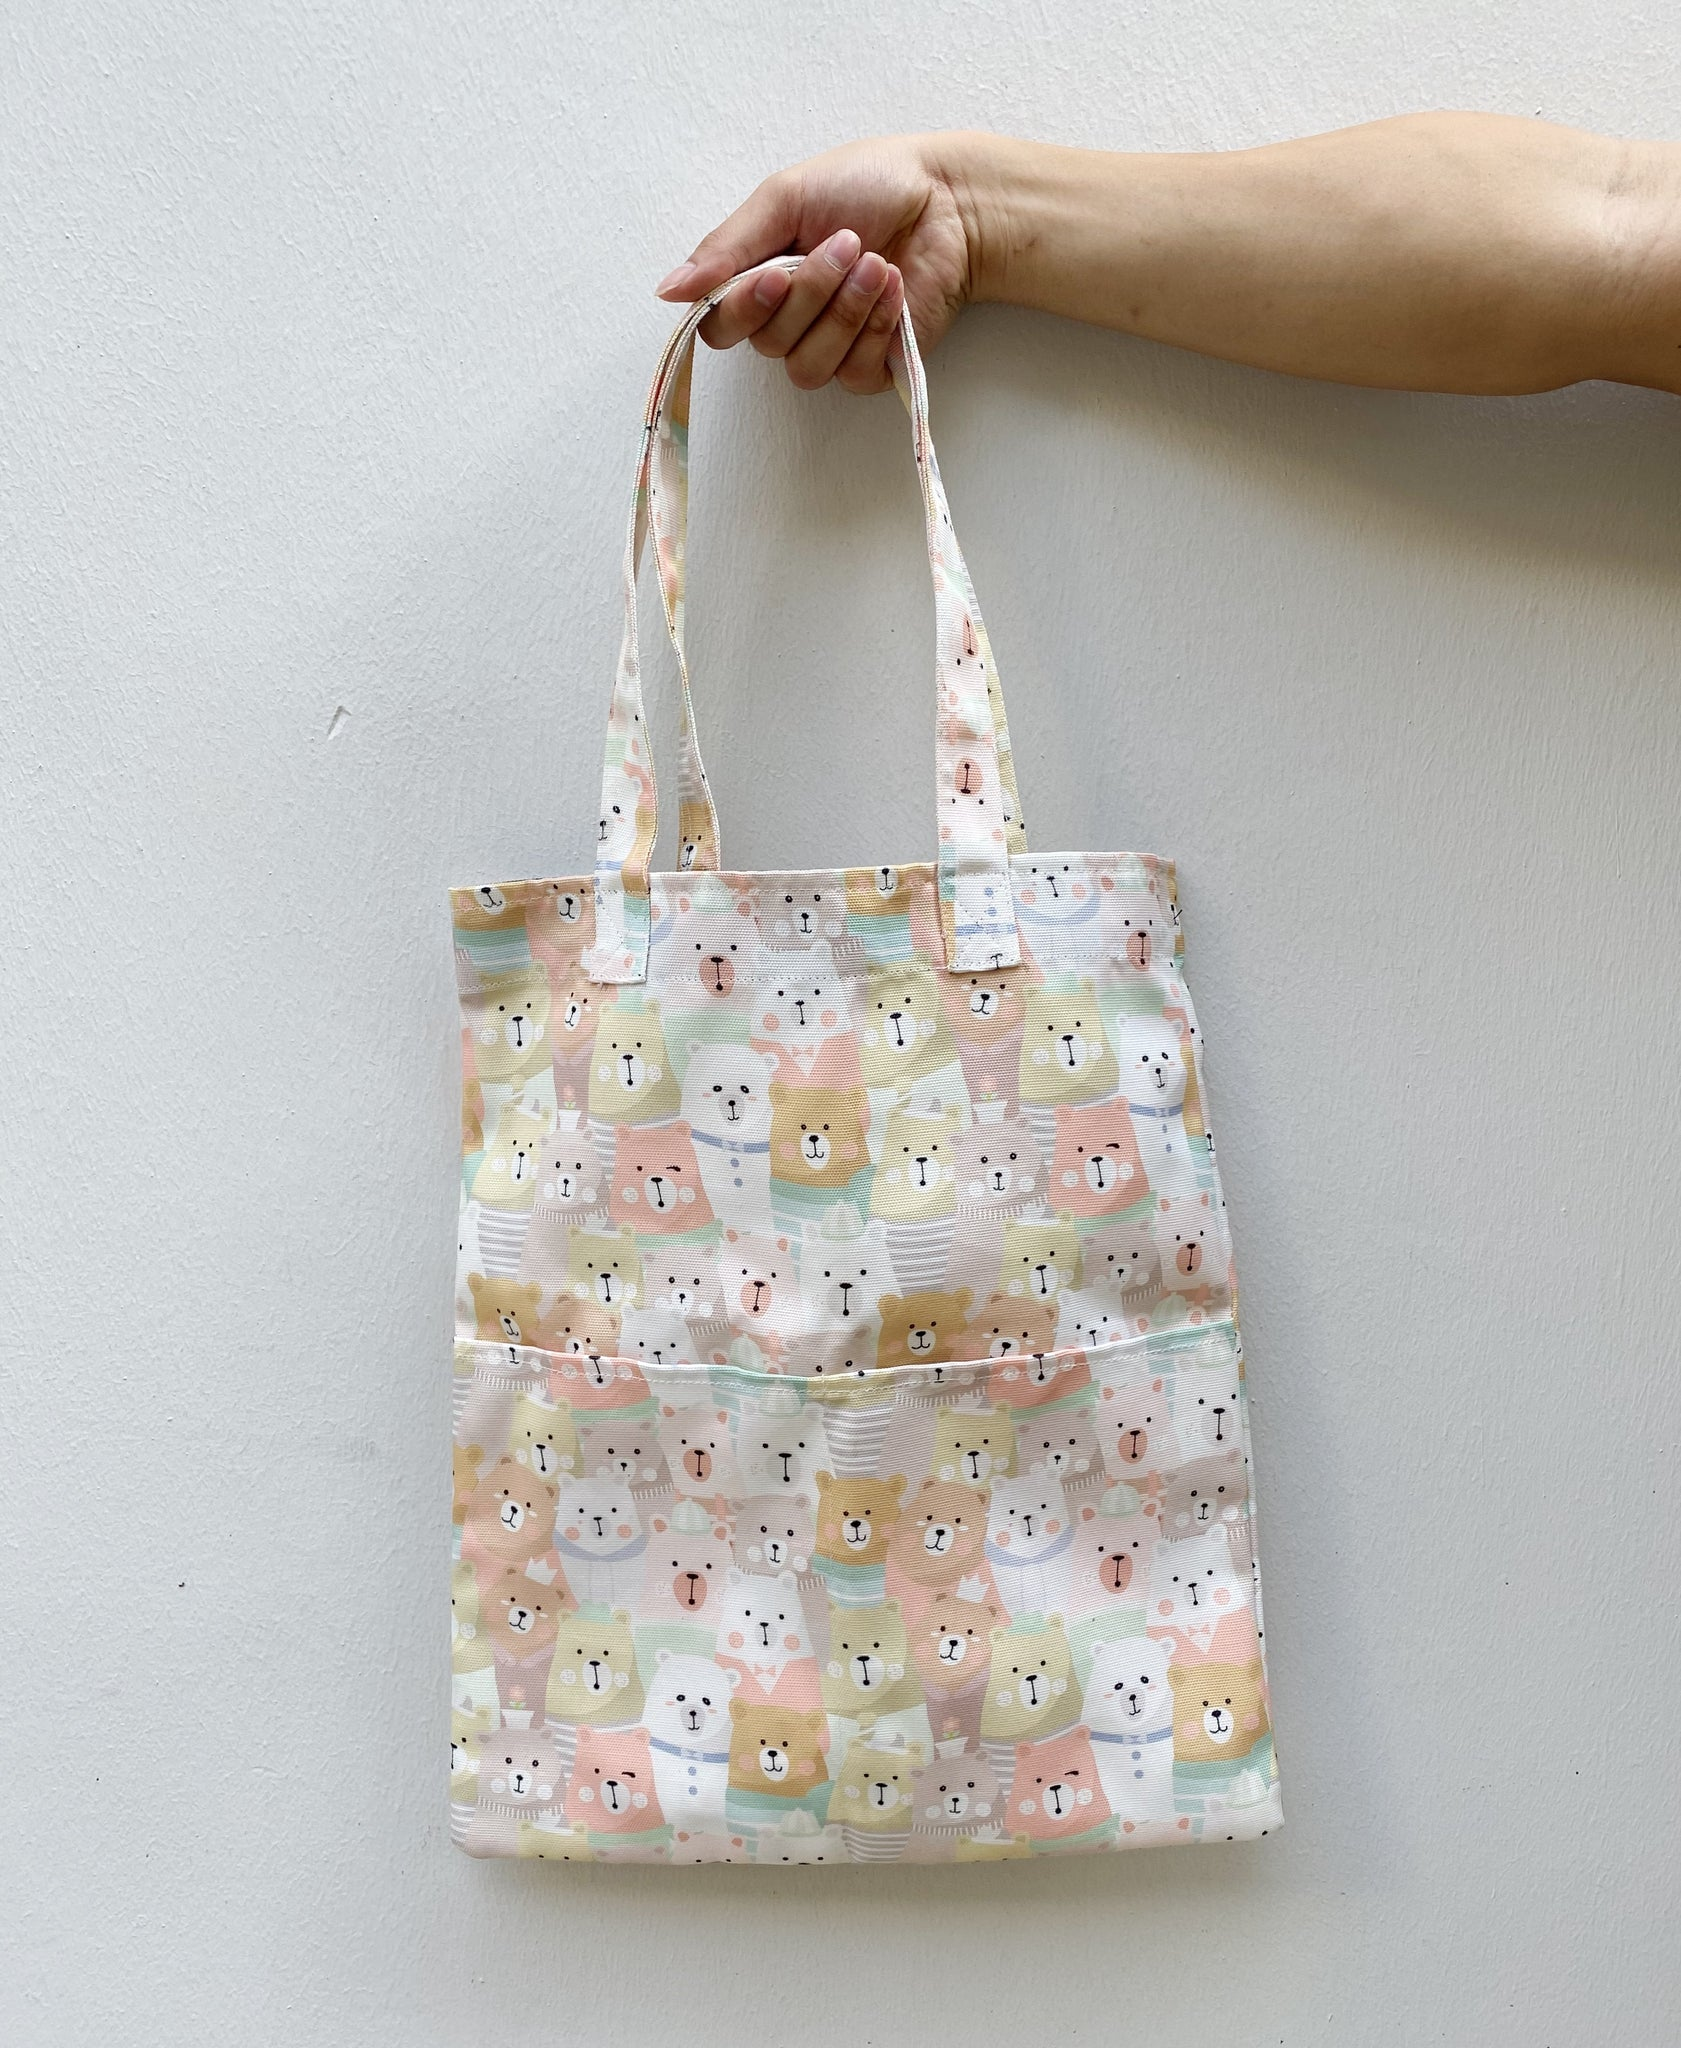 Double Pocket Tote - Cream Bear (Water-Repellent)